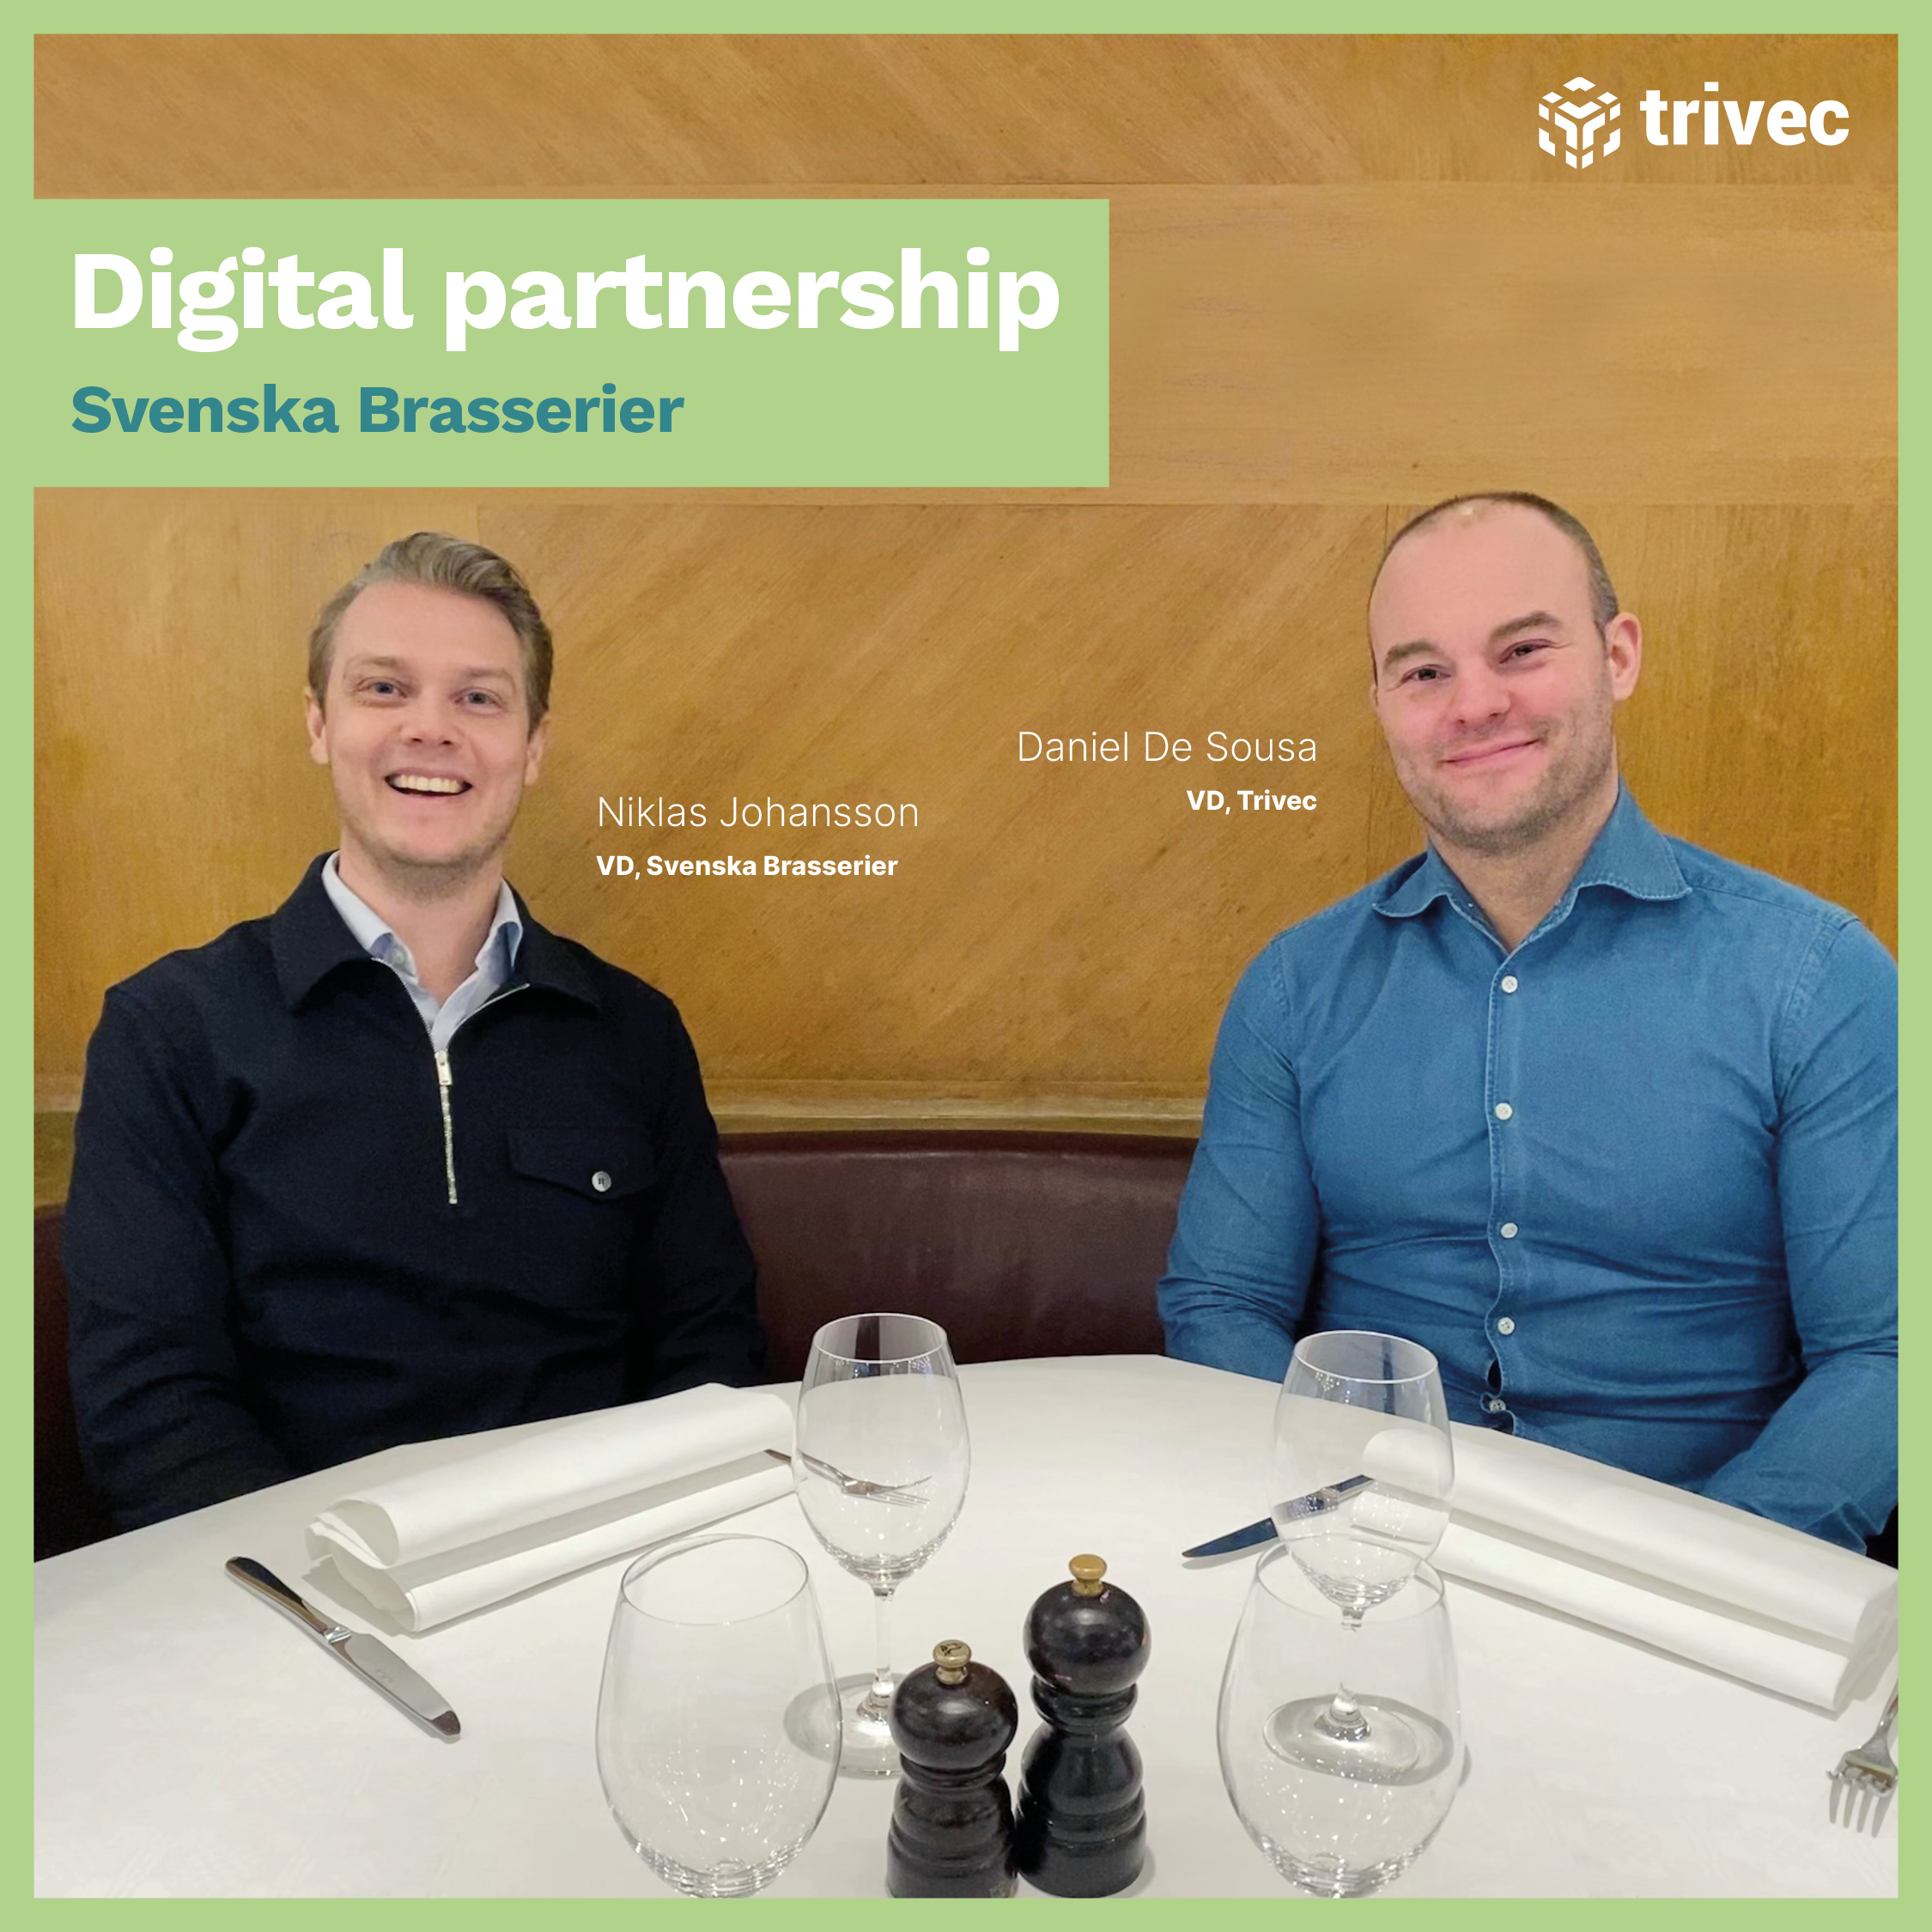 Trivec and Svenska Brasserier digital partnership